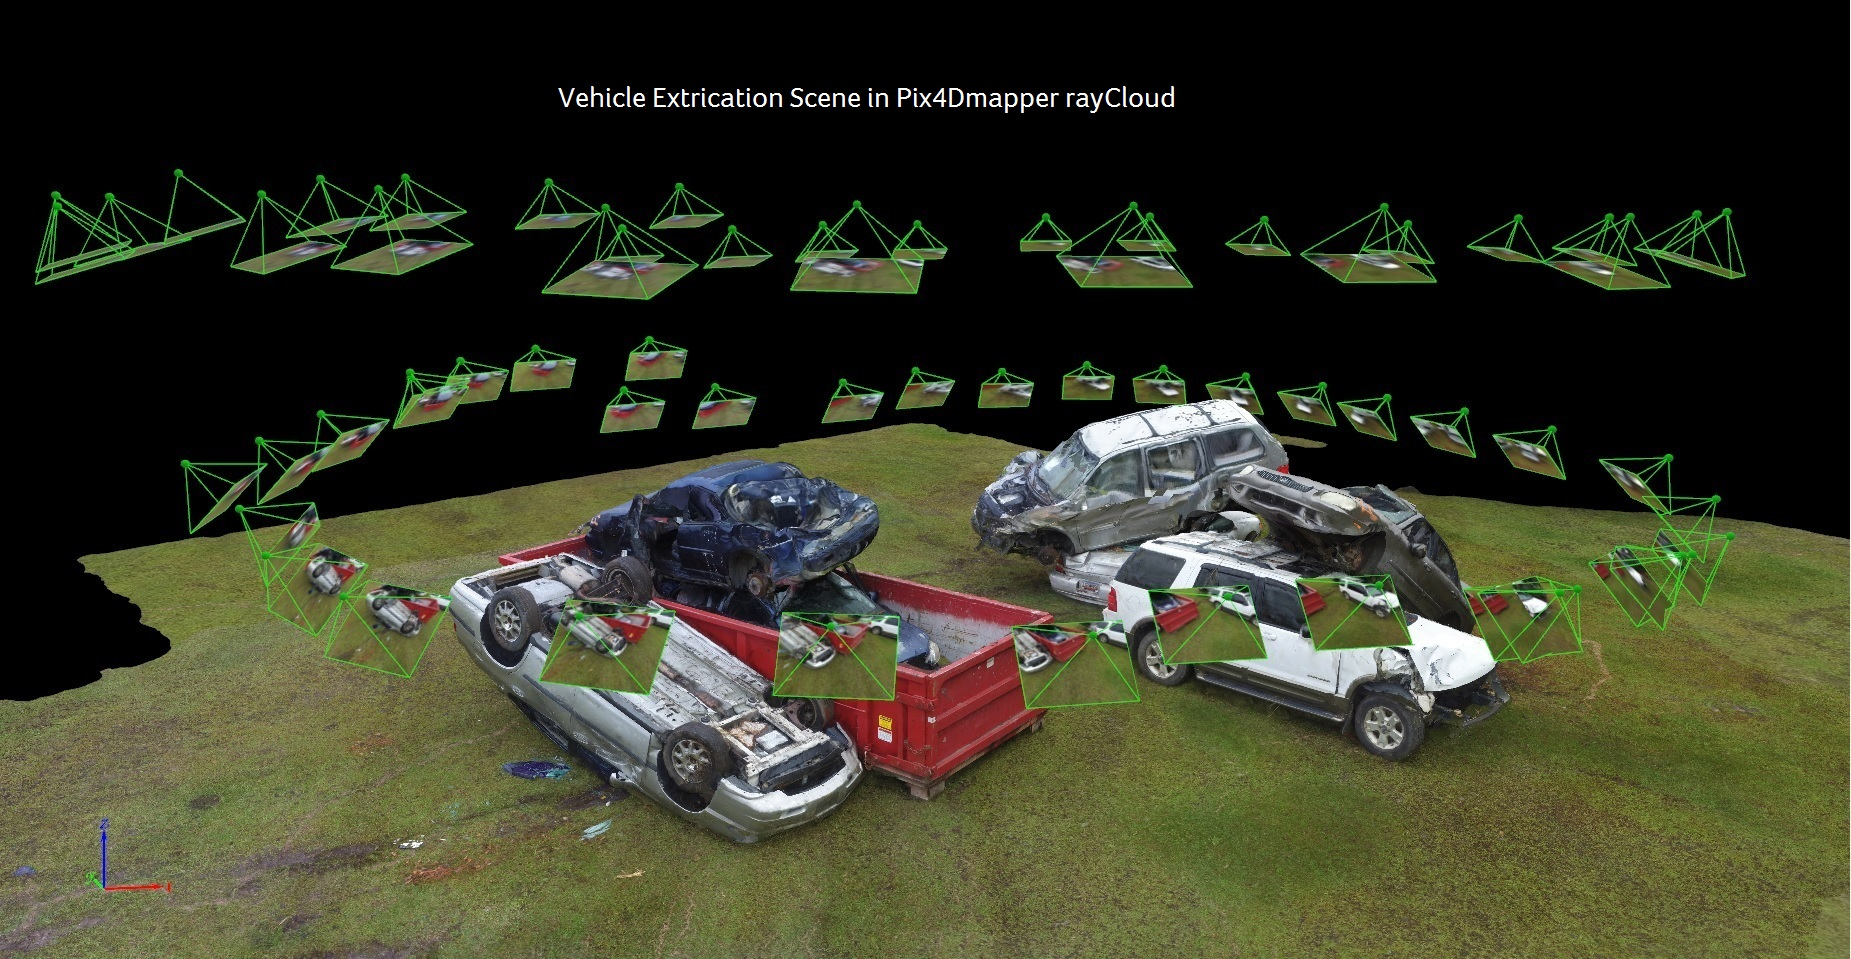 Vehicle Extrication Scene in Pix4Dmapper Cloud.